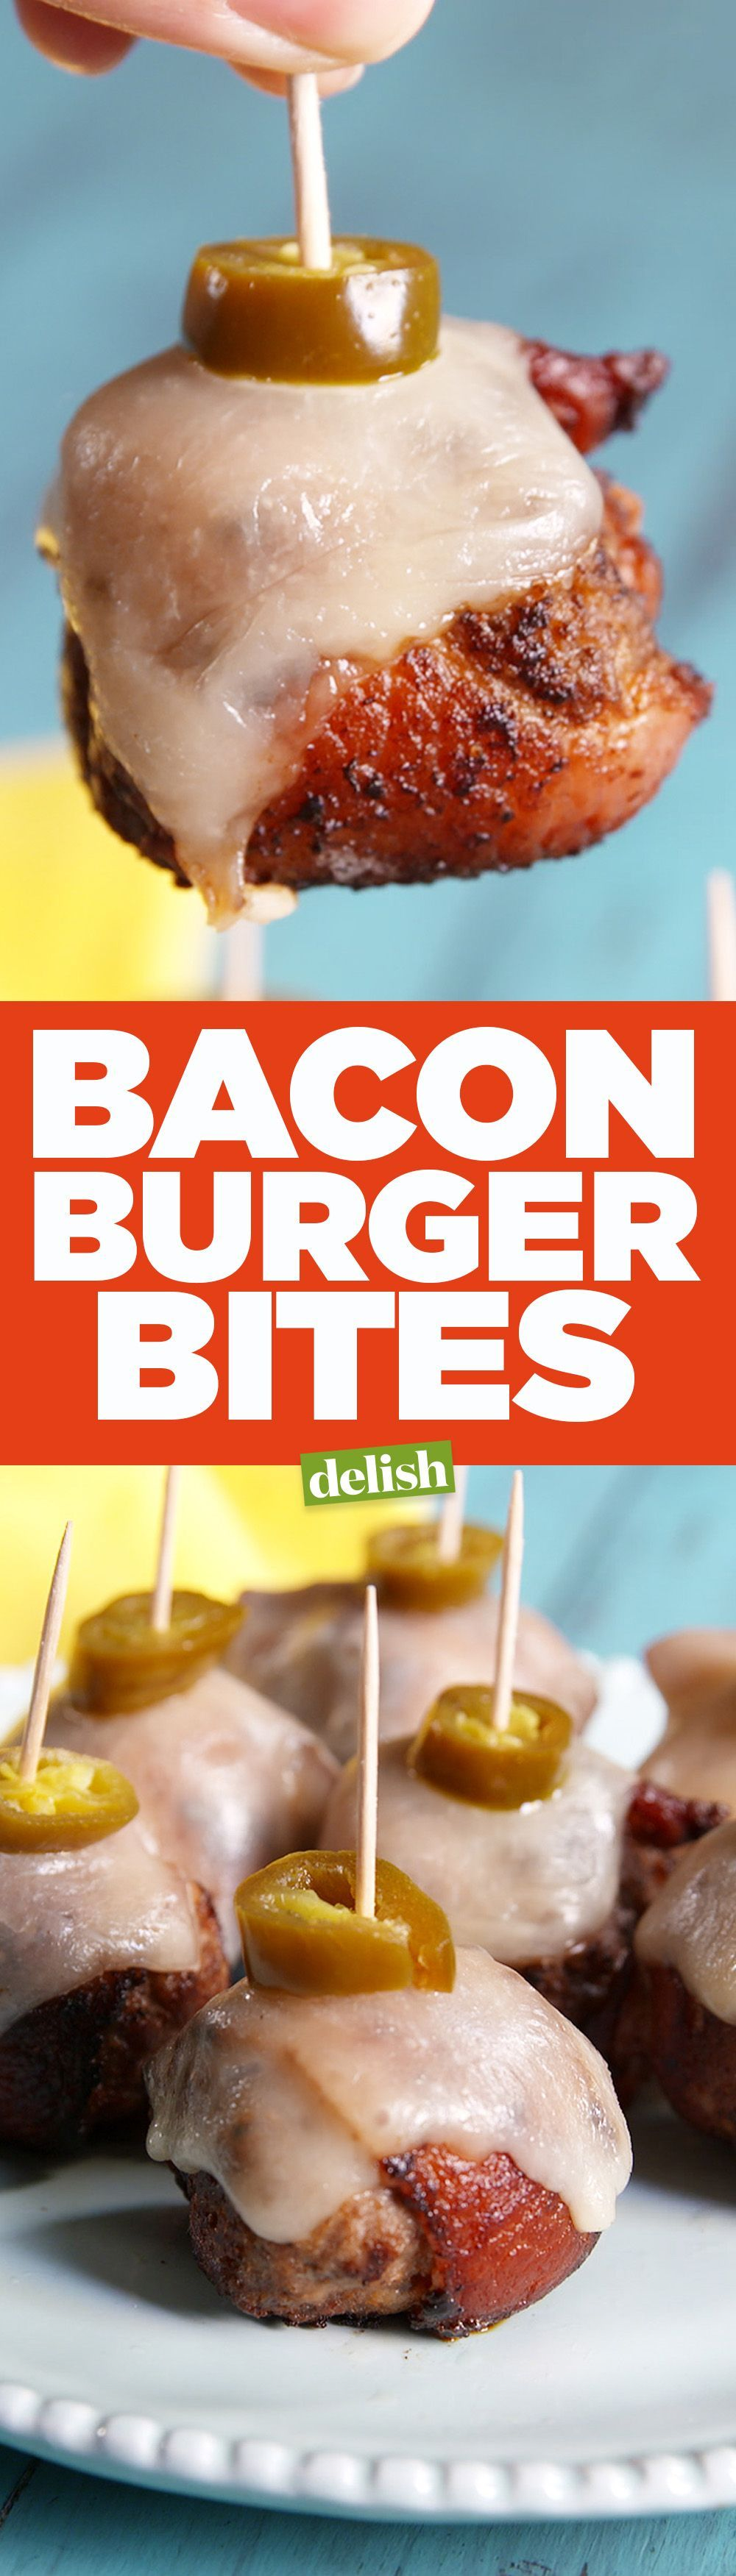 Burger Bites Bacon Burger Bites are the low-carb game day app your party desperately needs. Get the recipe from .Bacon Burger Bites are the low-carb game day app your party desperately needs. Get the recipe from .